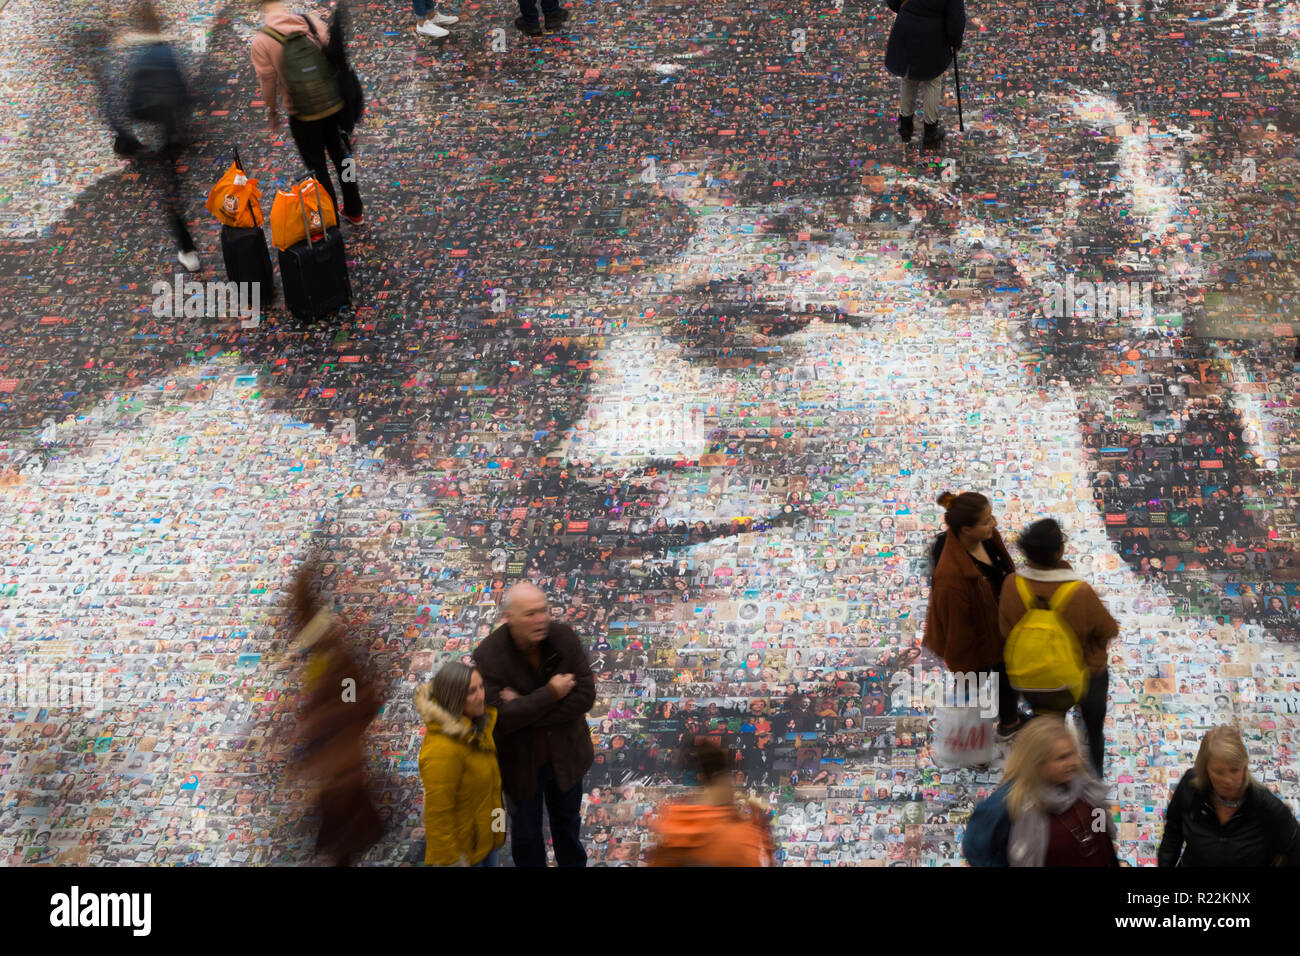 Birmingham, UK. 16th November, 2018. A large-scale mosaic portrait of sufragette Hilda Burkitt is on show on the concourse floor of New Street station, Birmingham. The 20 metre portrait is made up of 3,724 selfie photographs and other photographs of women sent in from all over the UK. The project, called Face of Suffrage, is deisgned by artist Helen Marshall. Hilda Burkitt was born in Wolverhampton in 1876, was convicted and jailed for breaking a window in the then Prime Minister's train carriage. Peter Lopeman/Alamy Live News - Stock Image